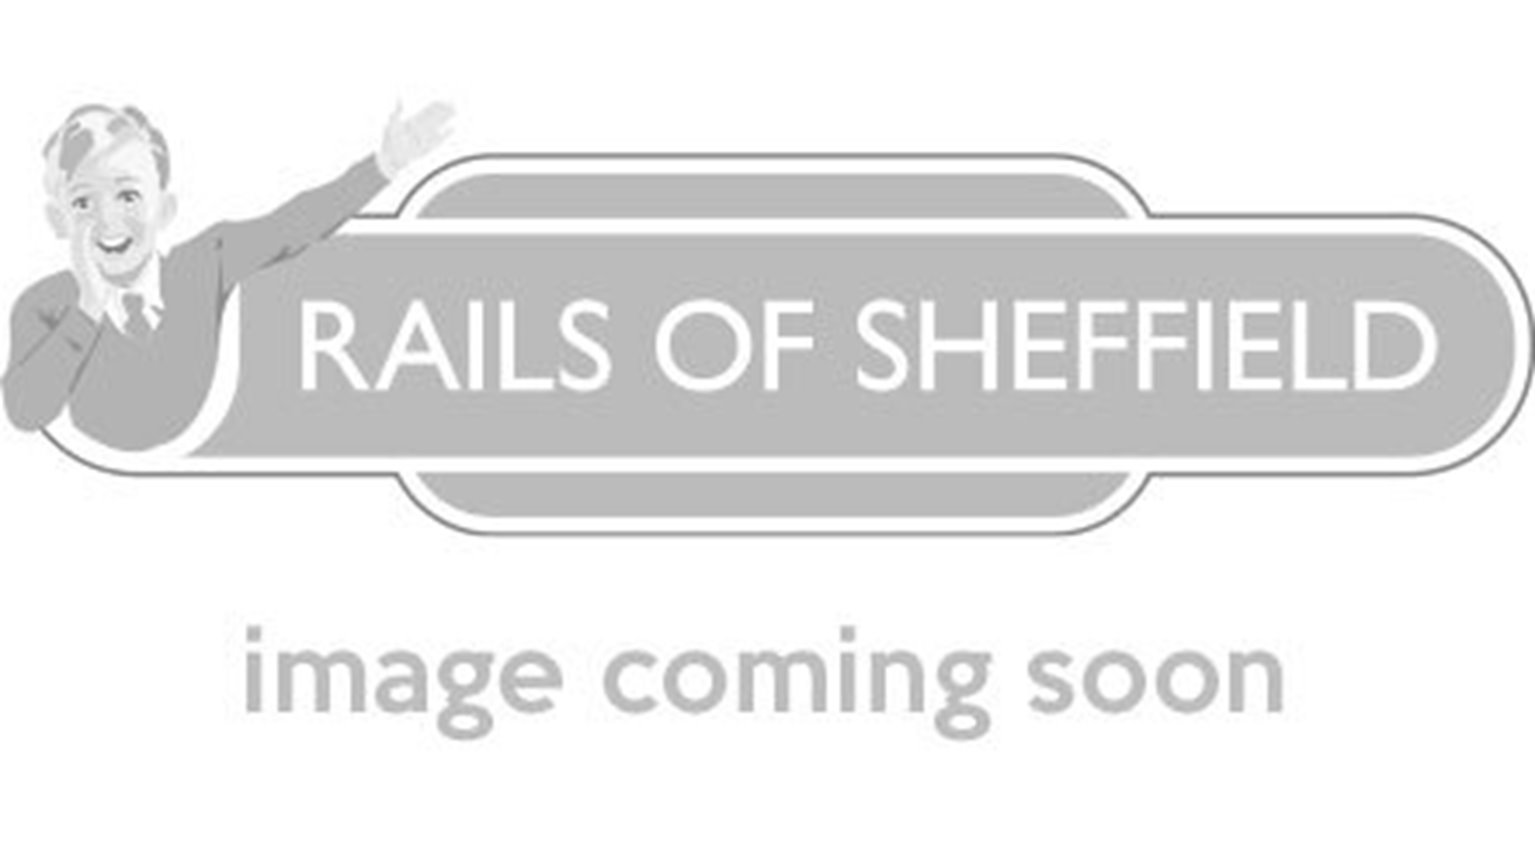 Stroudley Terrier A1X Class 'Fishbourne' Southern Green 0-6-0 Tank Locomotive No.9 DCC Fitted